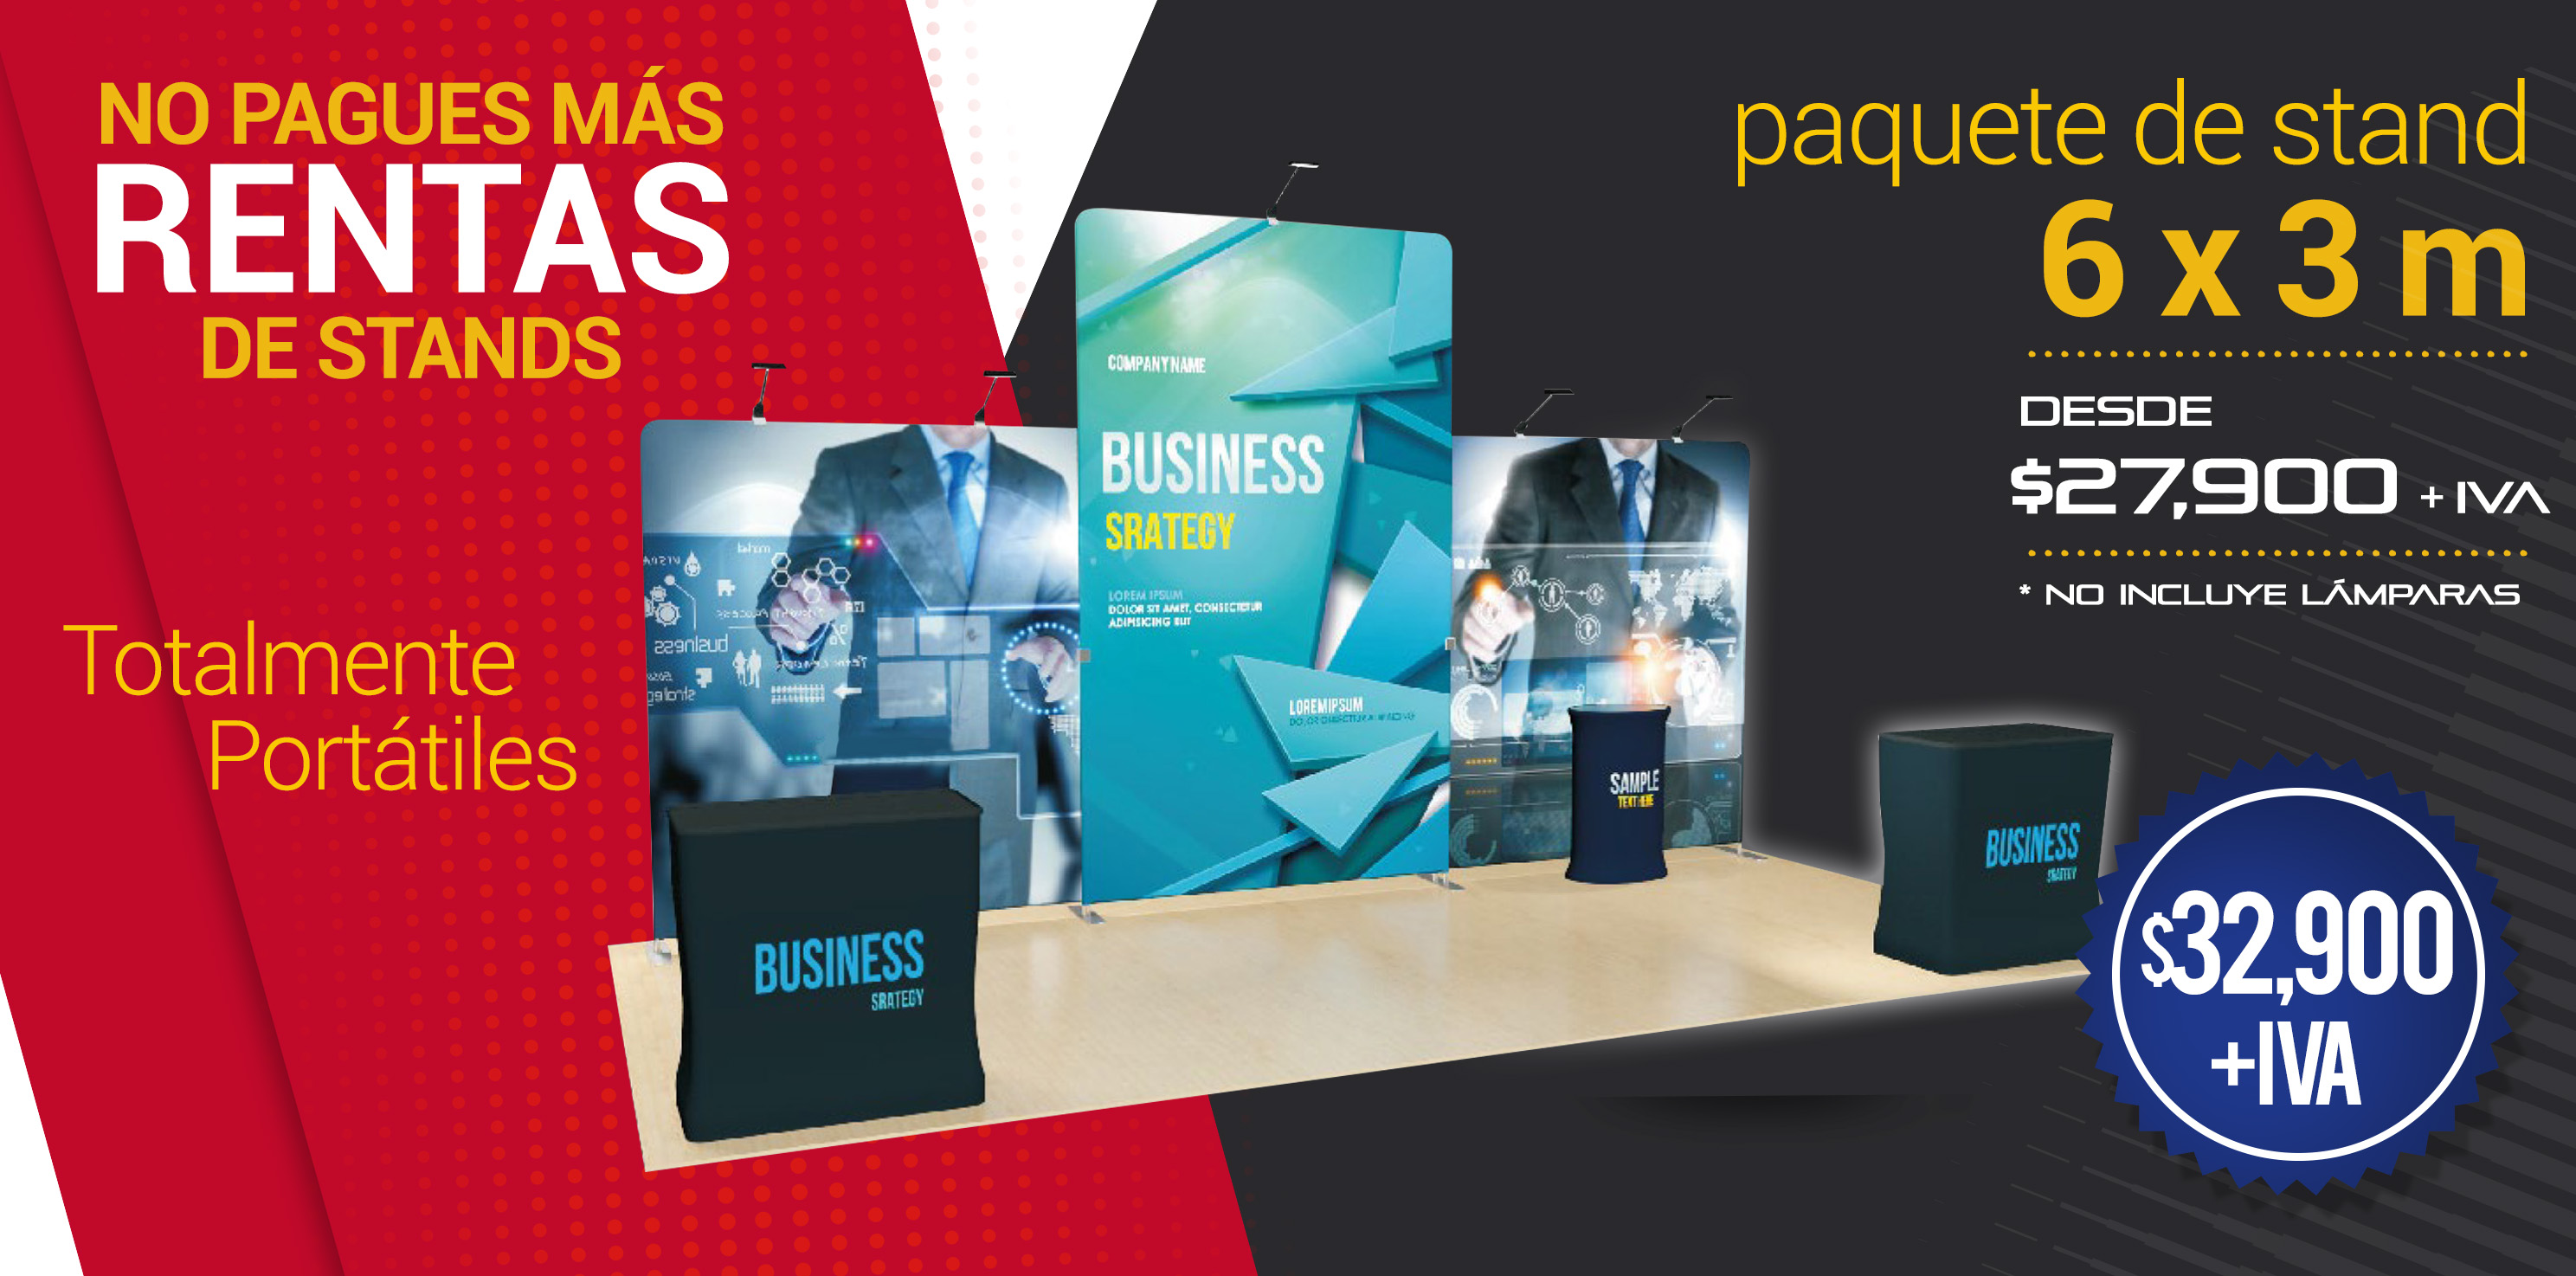 PAQUETE-STAND-6-X-3-M